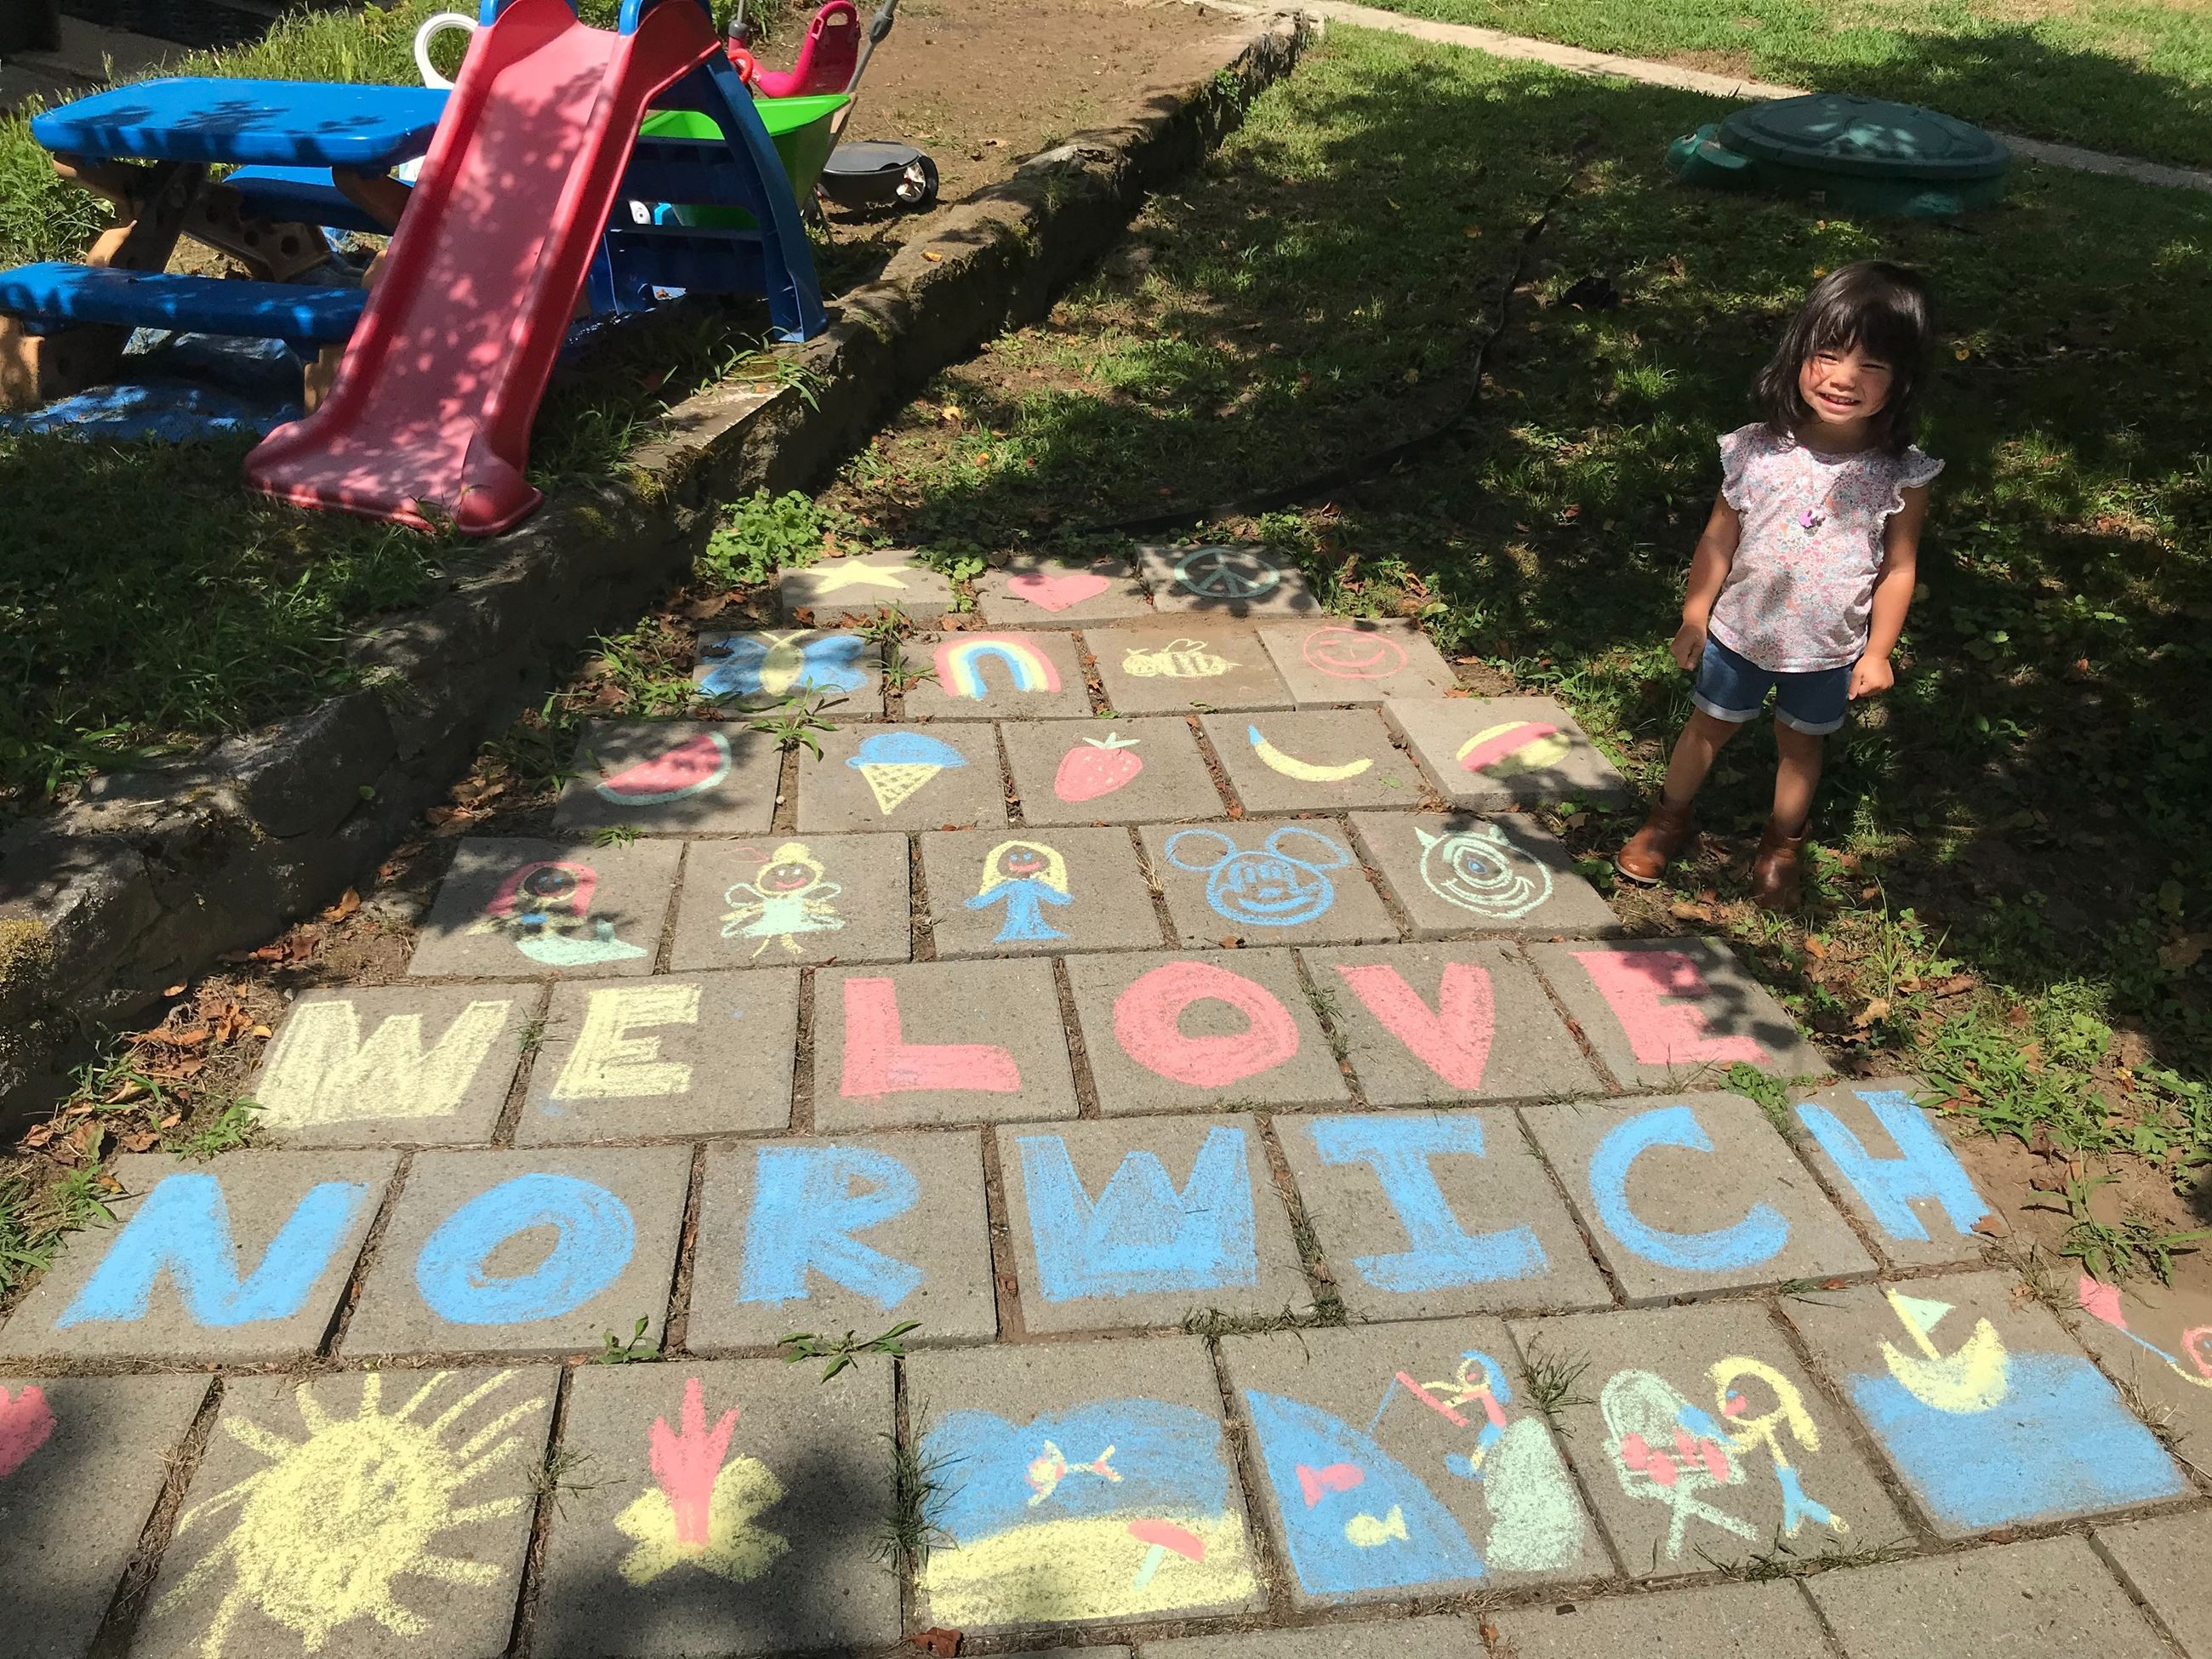 Picture of kids chalk art that says WE LOVE NORWICH